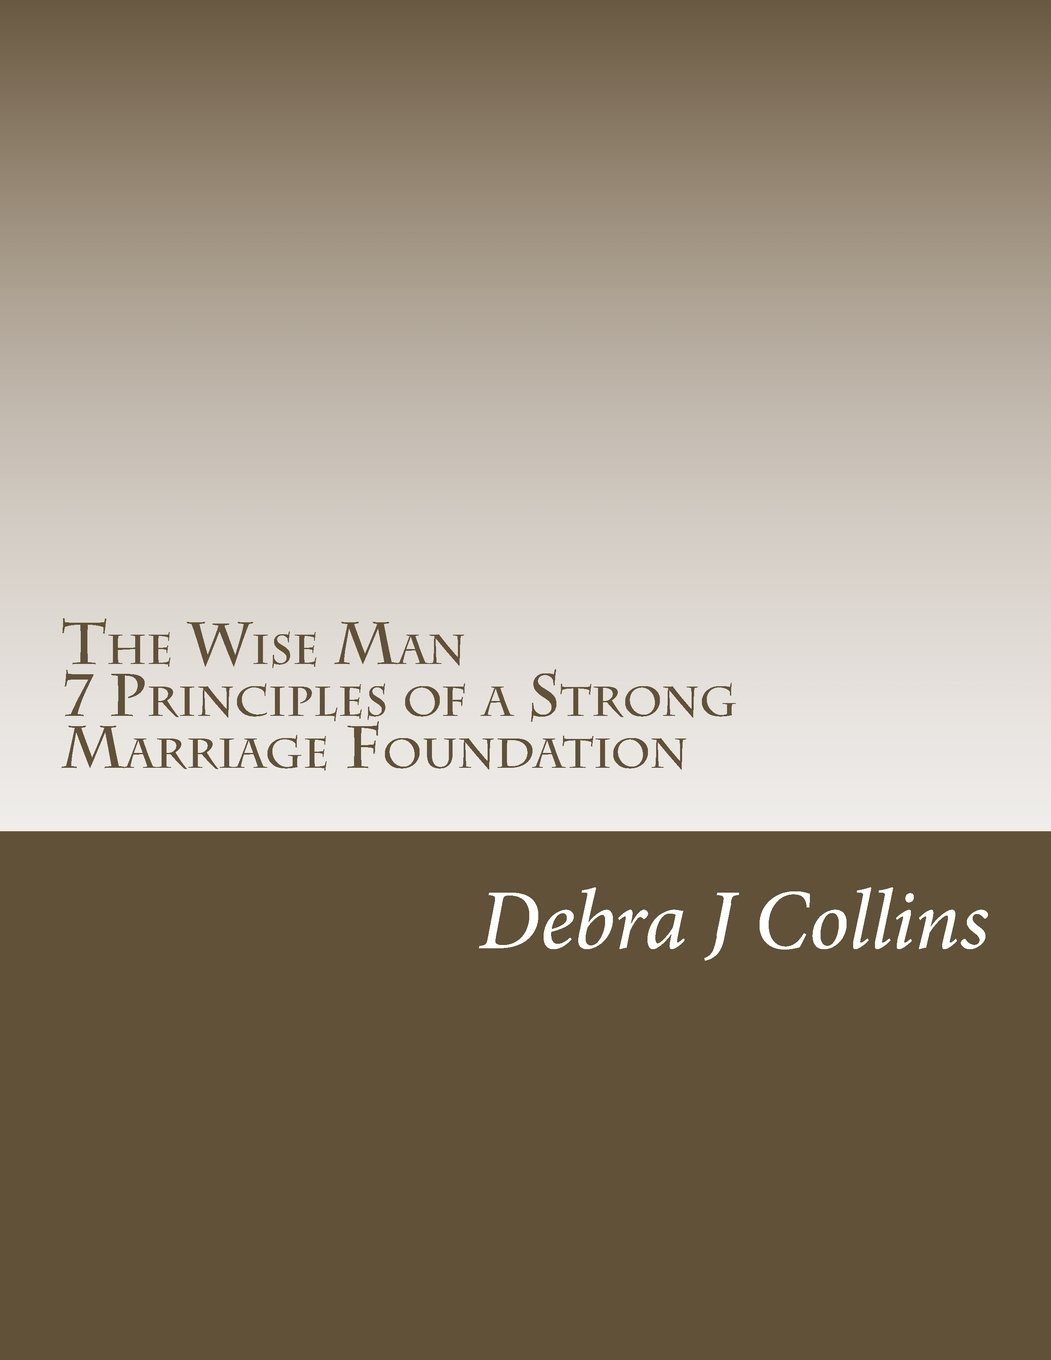 Read Online The Wise Man: A Marriage Foundation Building Guideline and Workbook (6 Principles of a Successful Marriage) (Volume 2) ebook